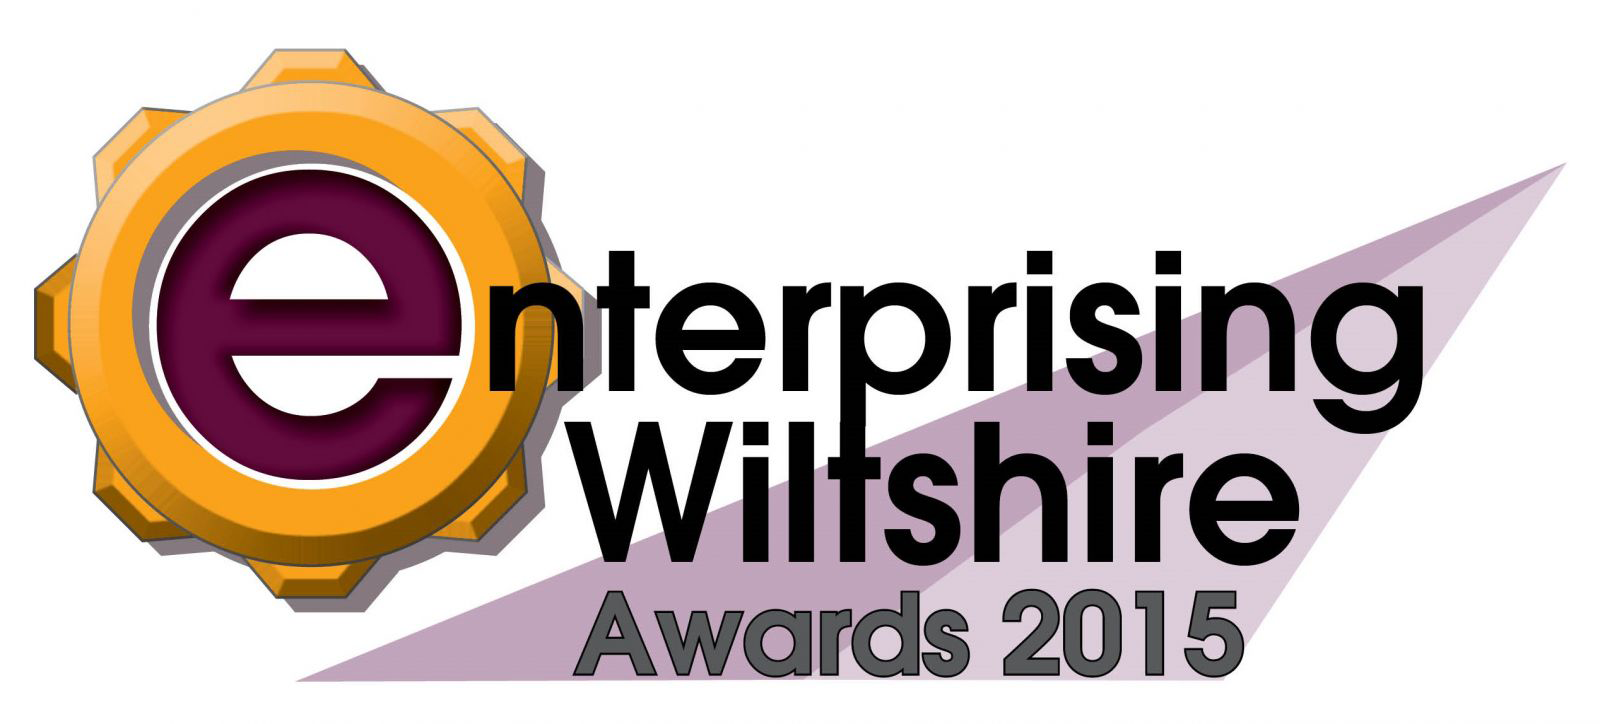 Enterprise Small Business Award